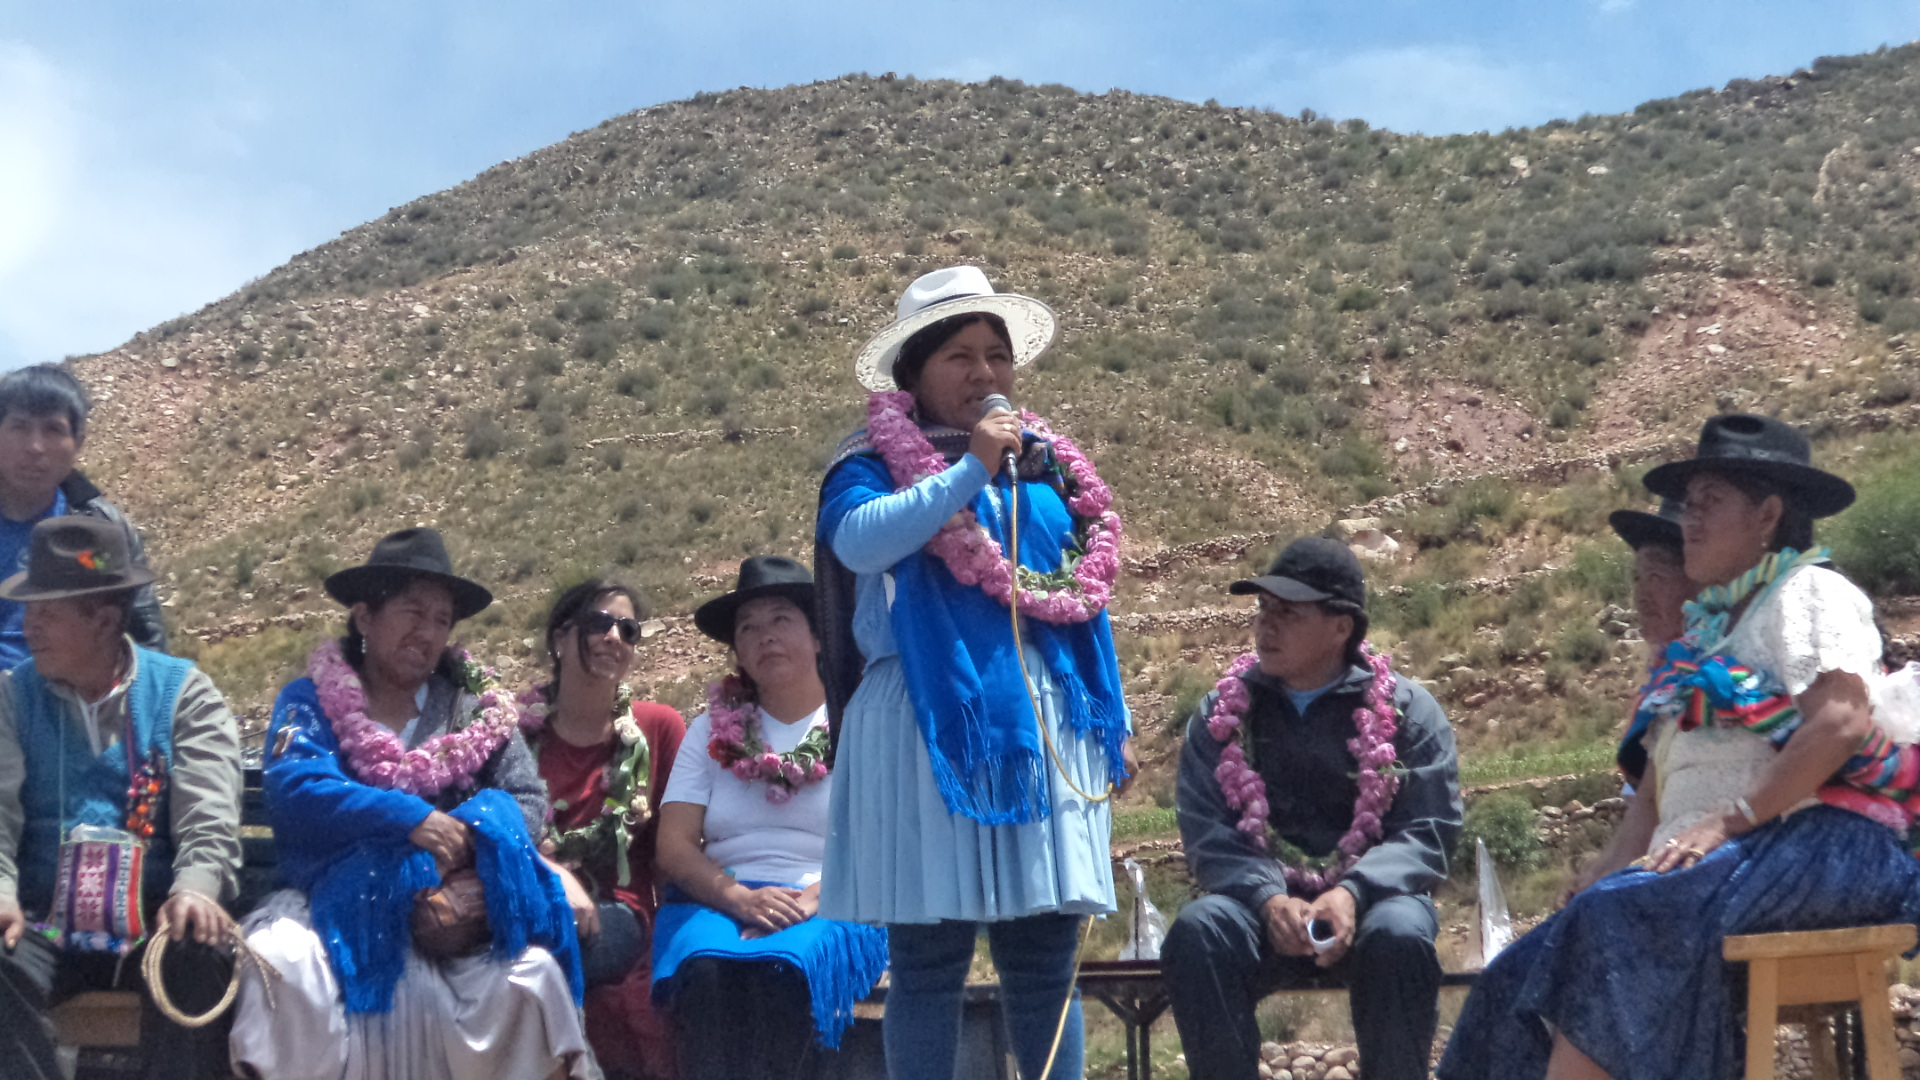 Over the past few years, Bolivia has improved its legislation to promote women's participation in politics